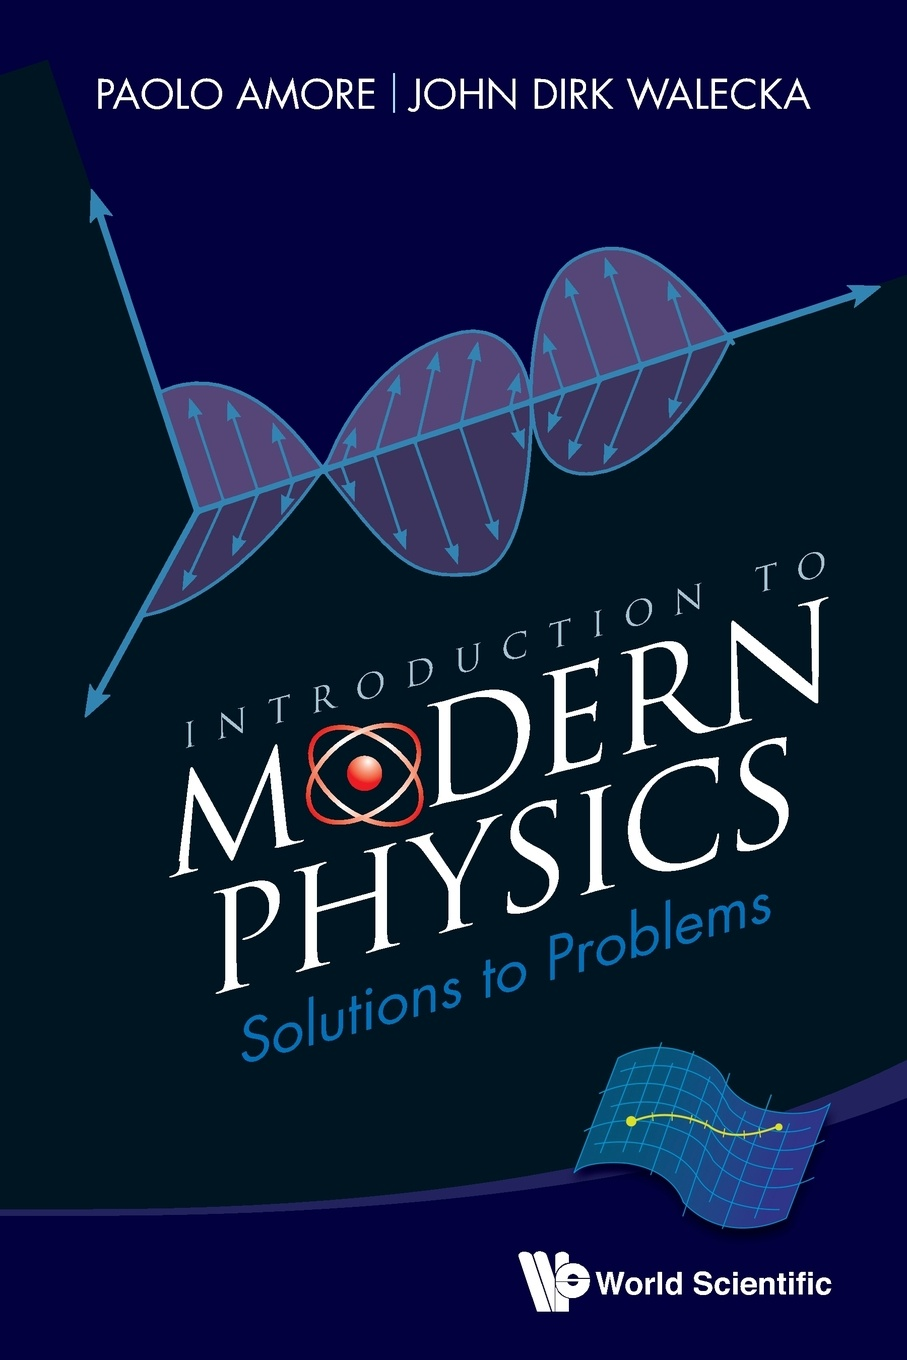 Paolo Amore, John Dirk Walecka Introduction to Modern Physics. Solutions to Problems steven engels similar solutions to similar problems